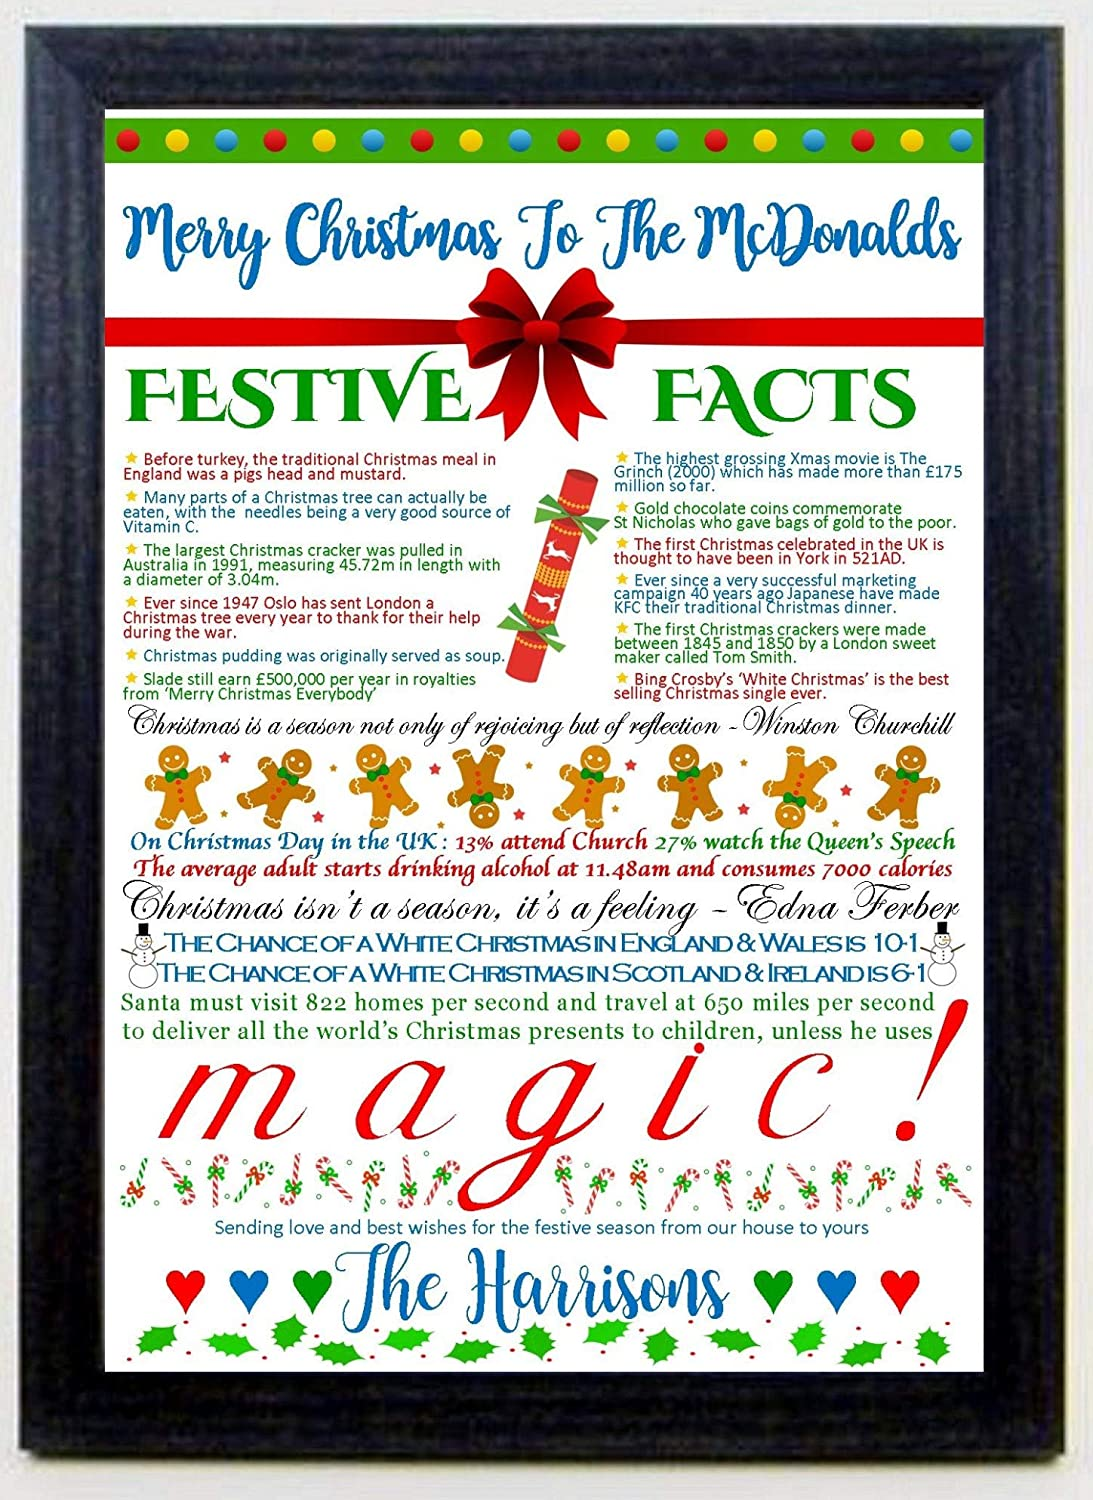 Christmas Fun Facts.Personalised Christmas Festive Fun Facts Print To Friends